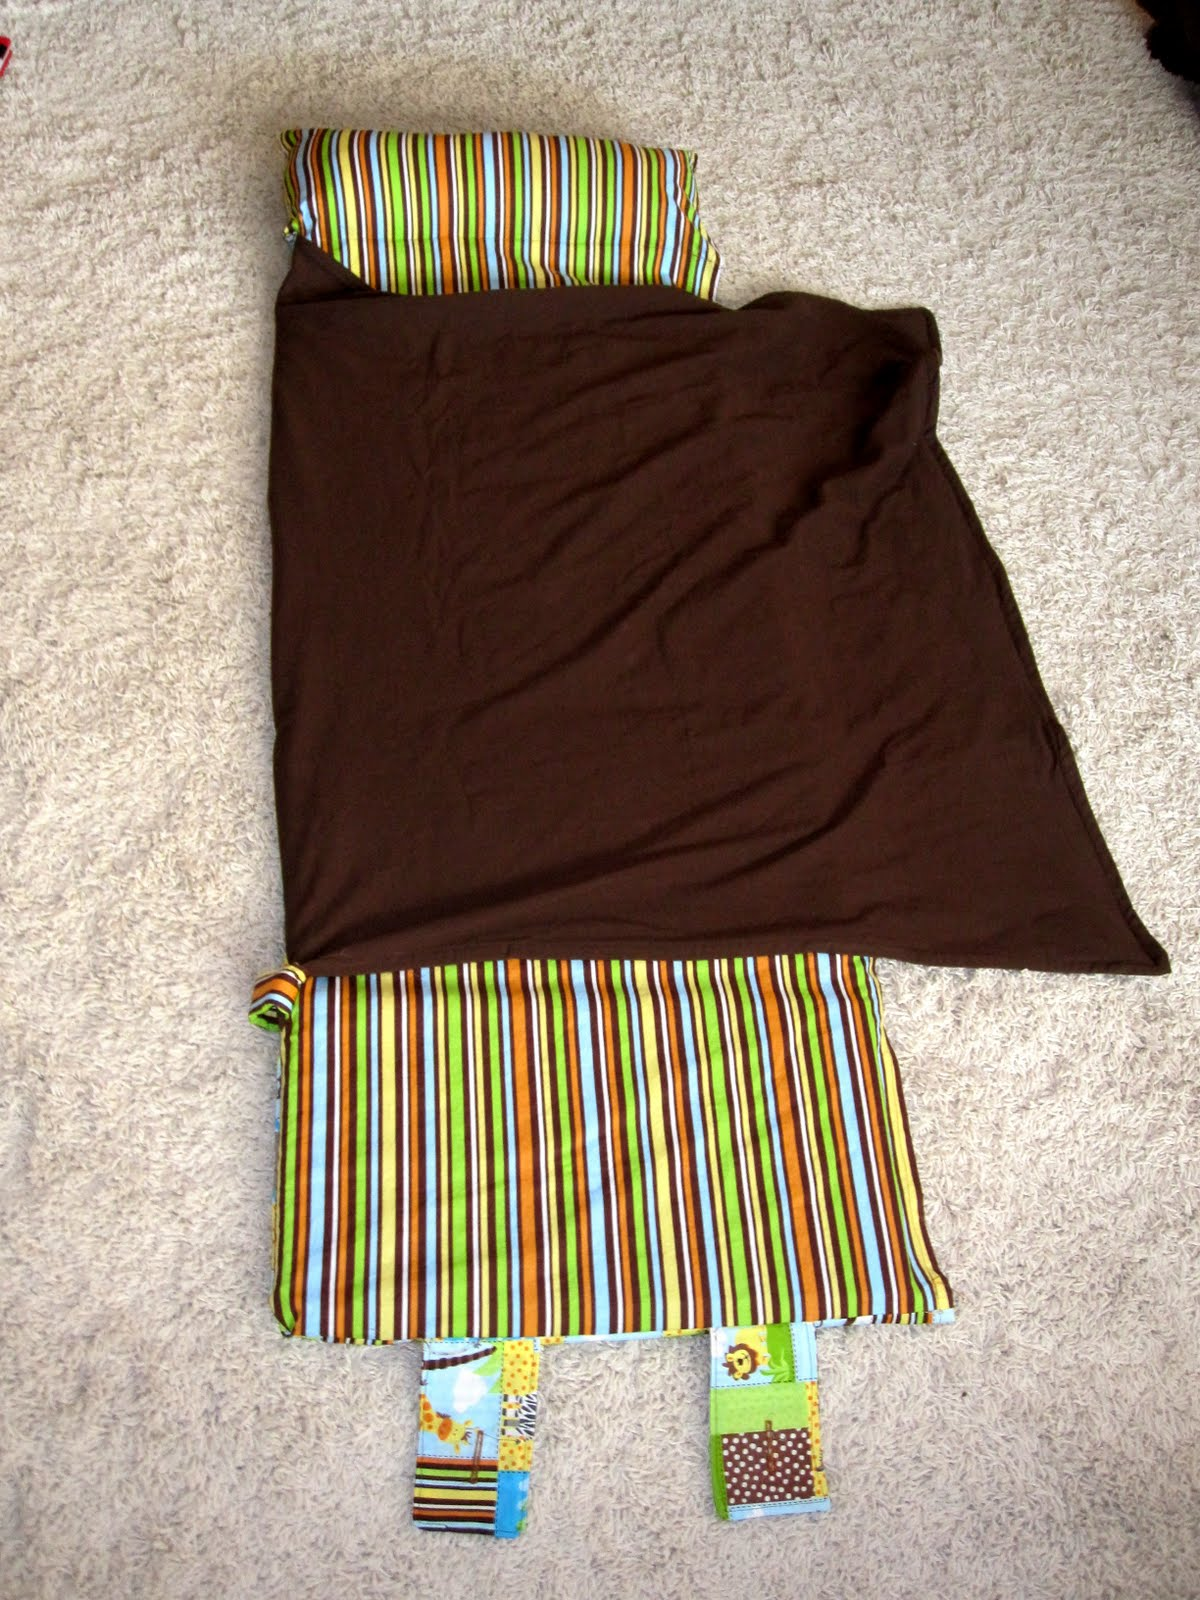 Lifes Sweeter with Chocolate Nap Mat Tutorial